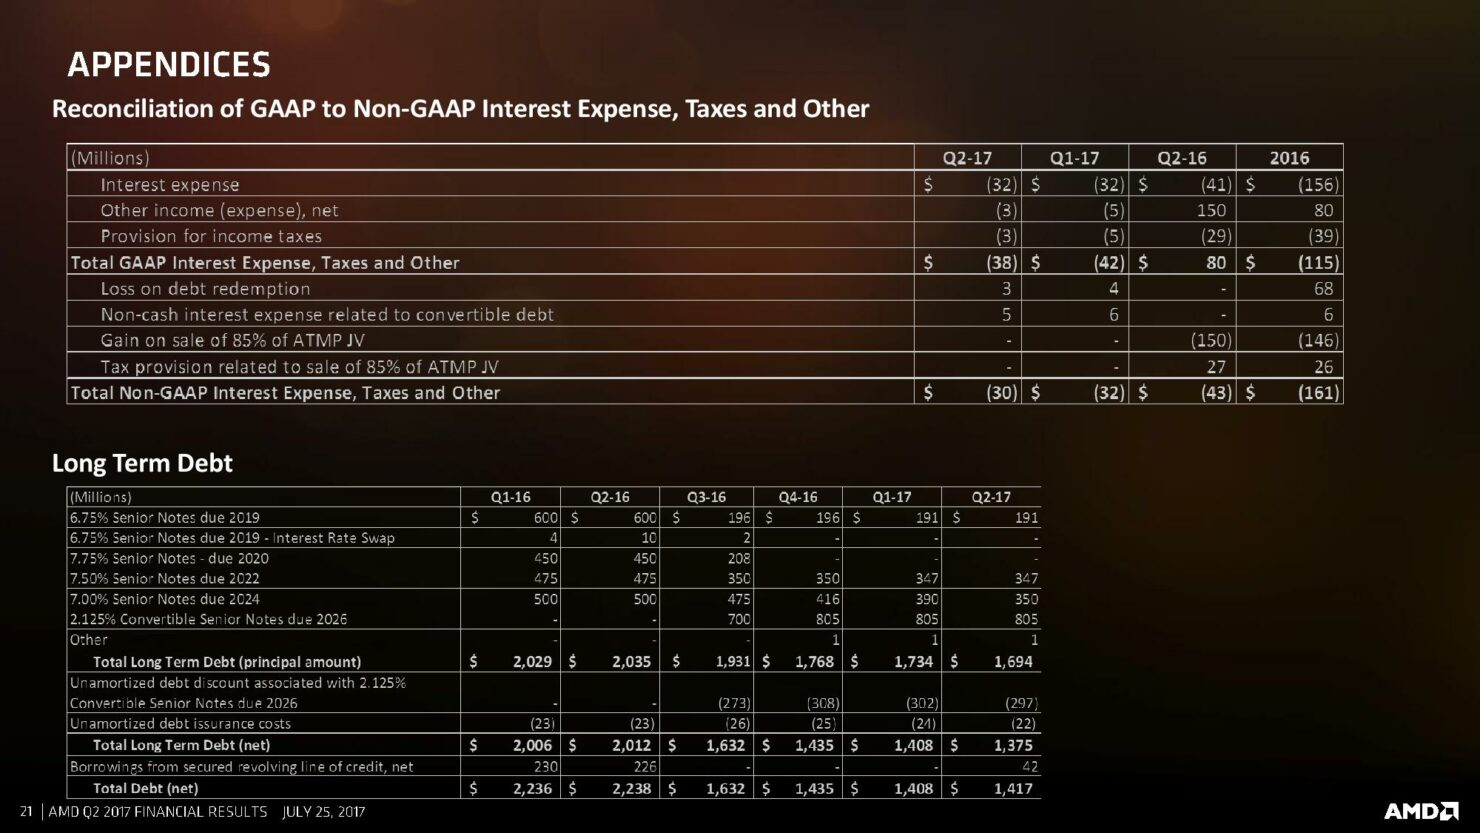 amd-cfo-commentary-slides-q2-17-page-021